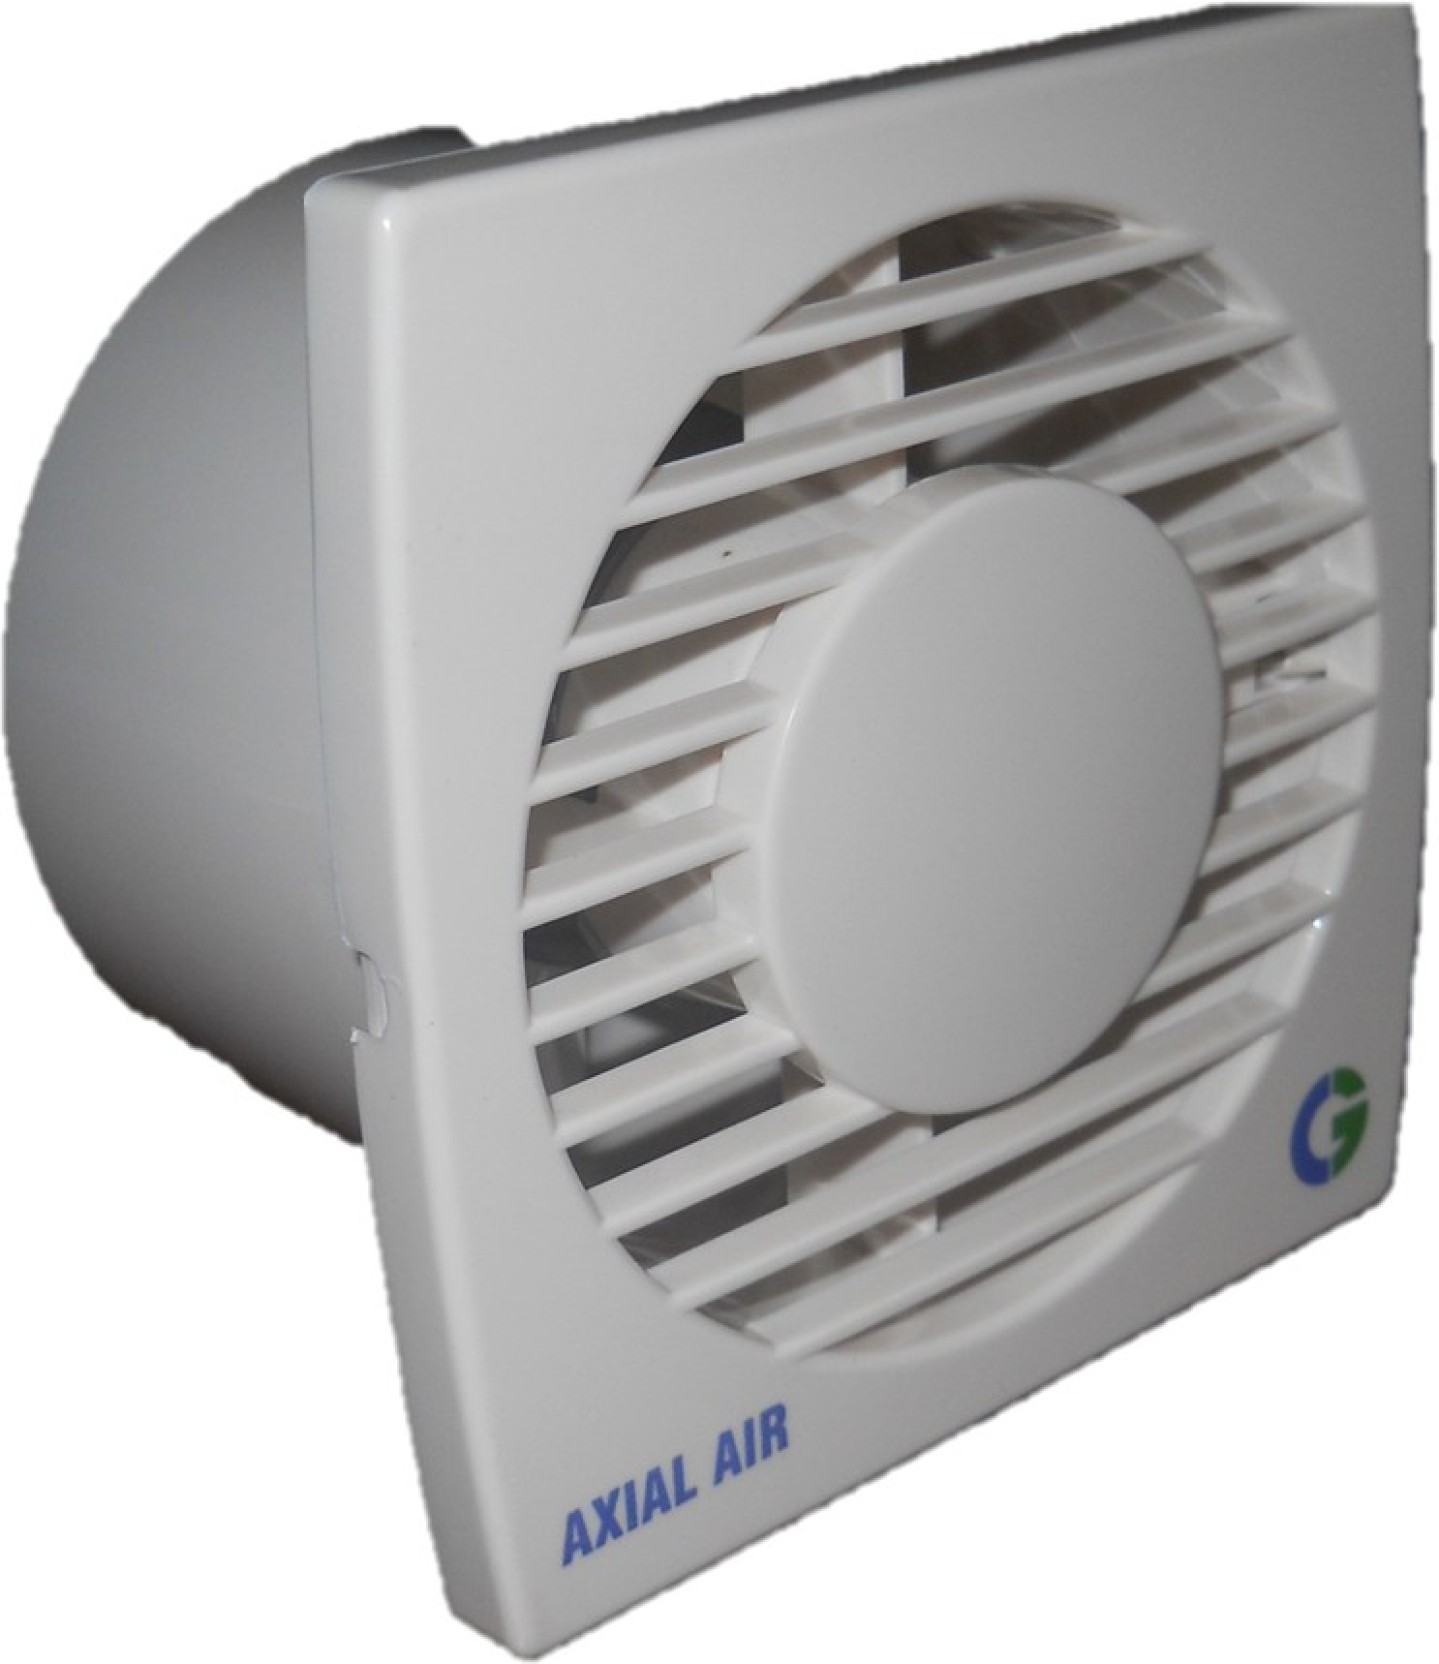 Reversible Axial Fans : Crompton axial air blade exhaust fan price in india